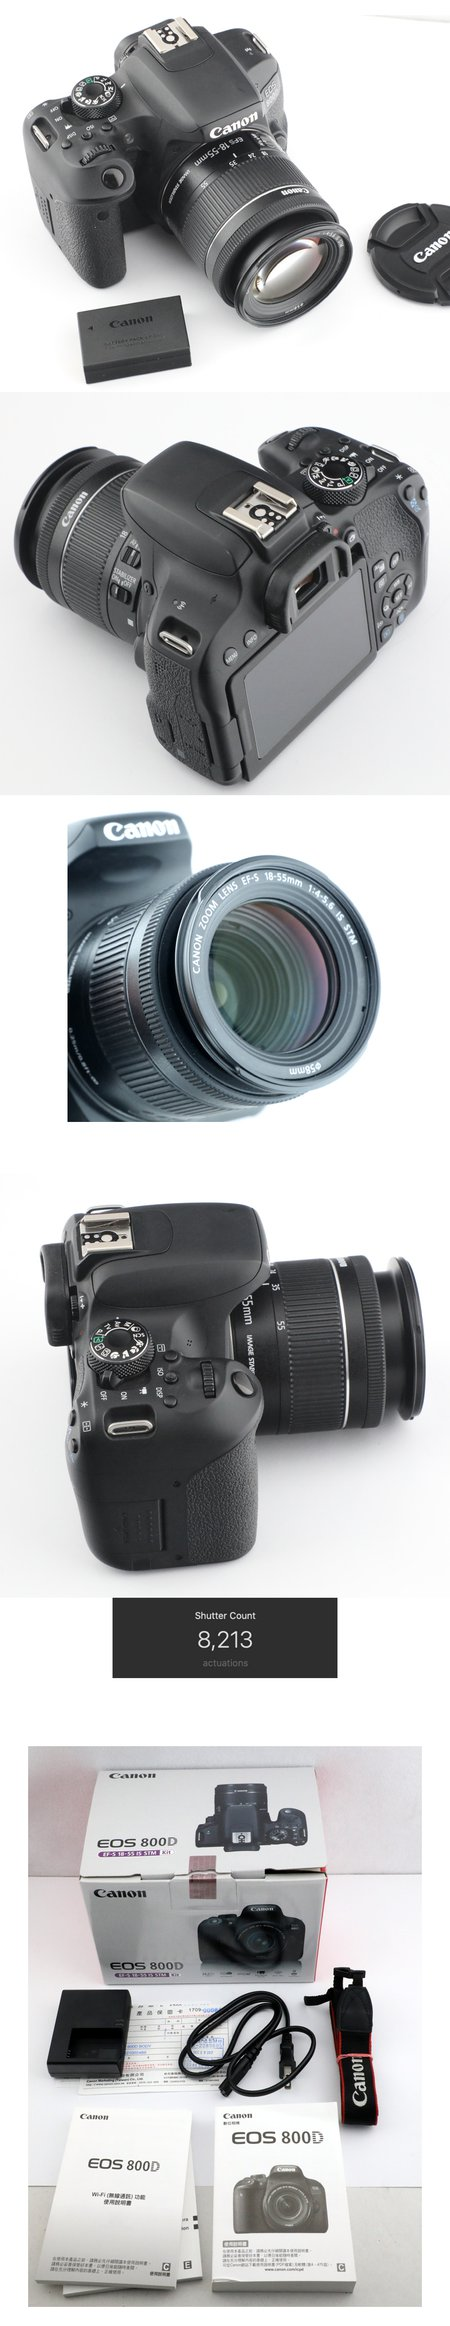 Canon 800D + 18-55mm  IS STM  公司貨